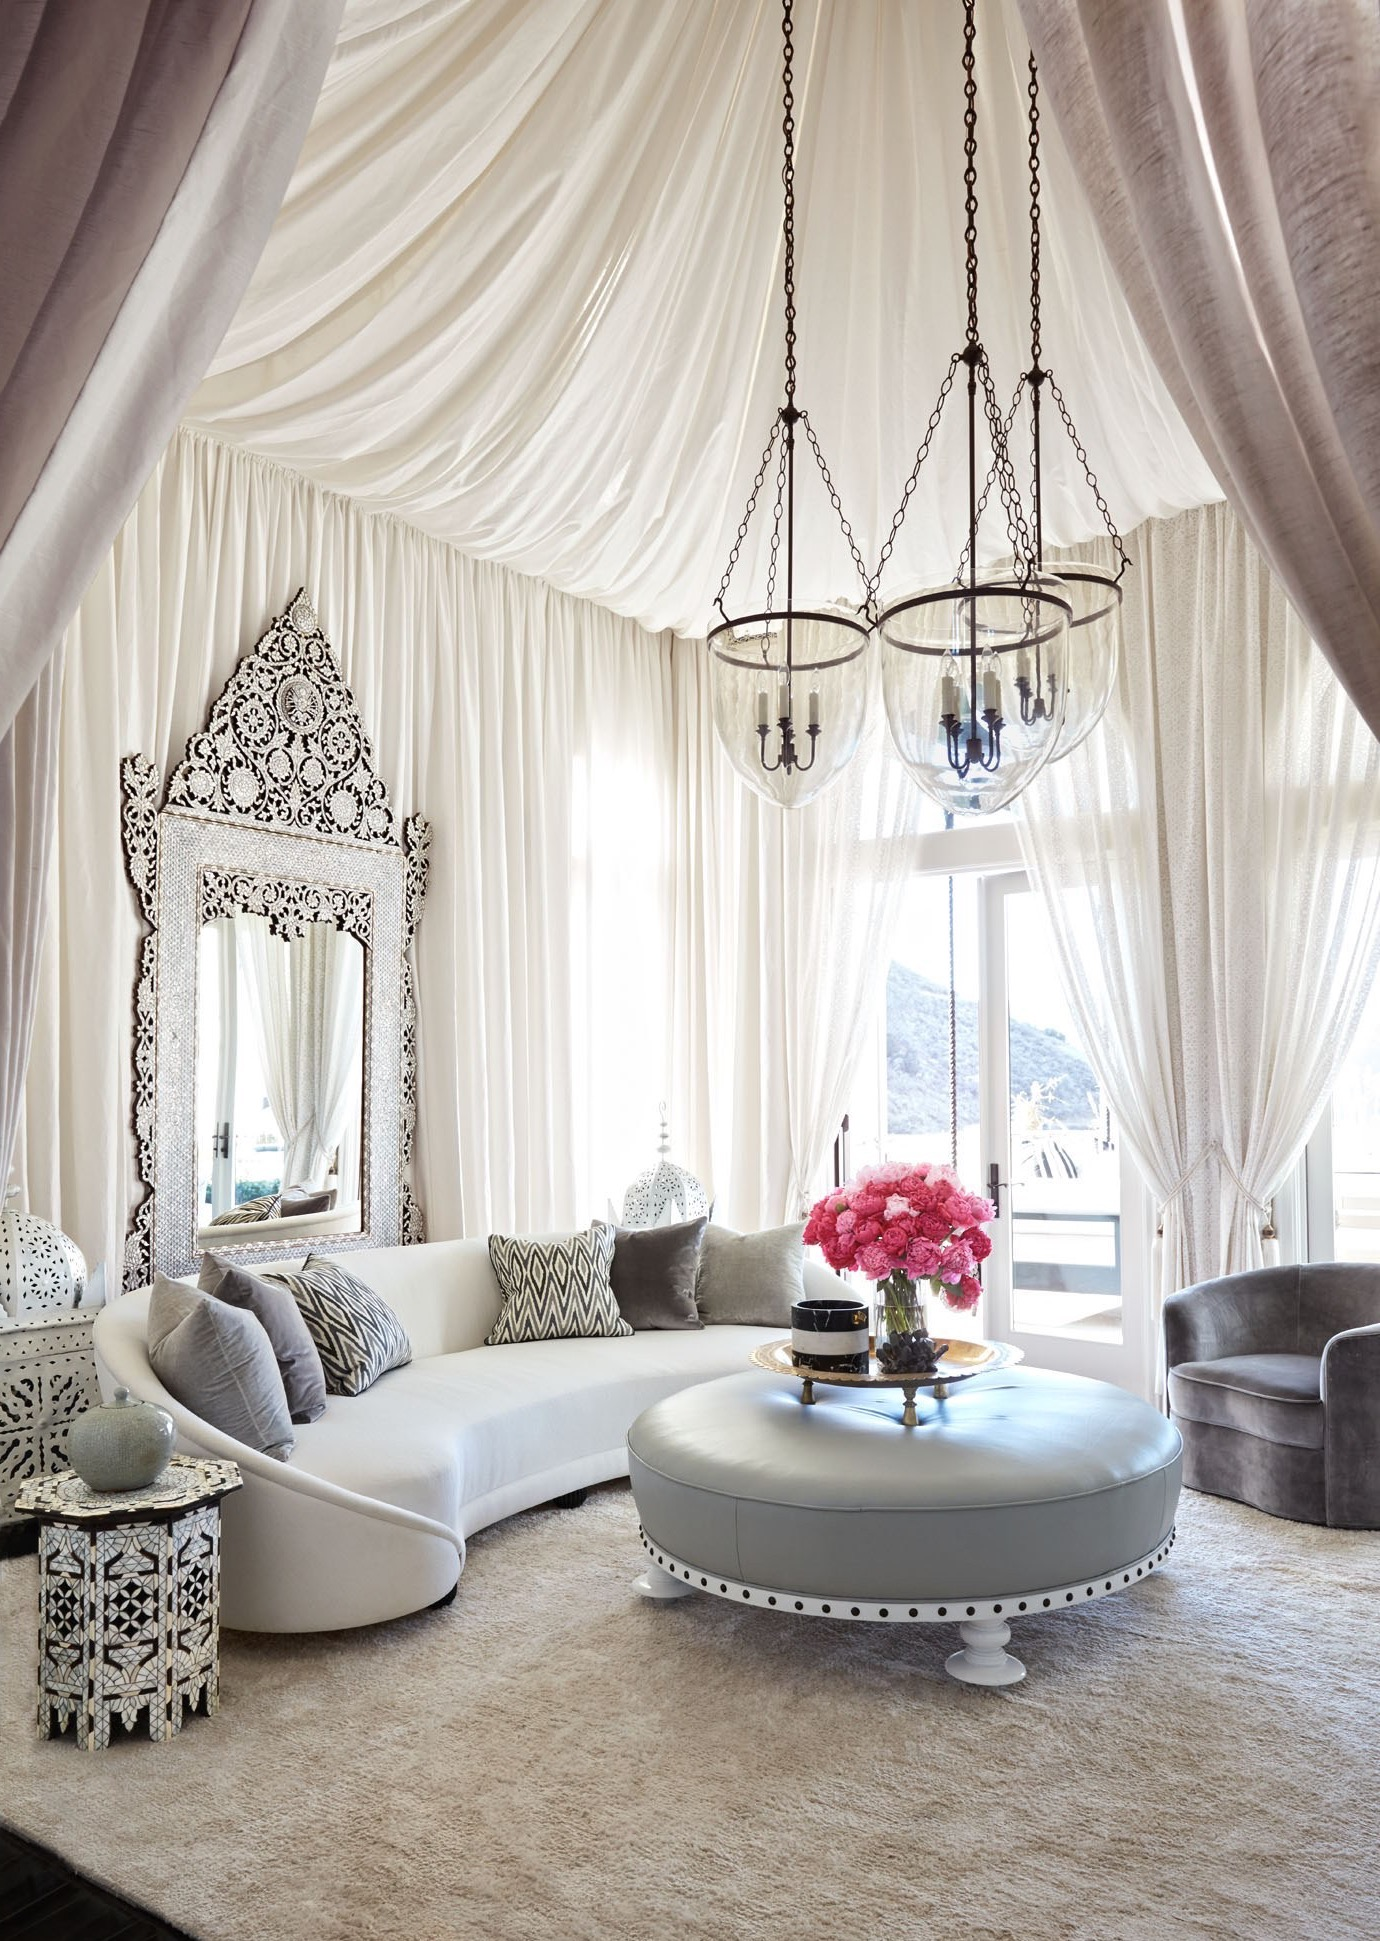 Moroccan Living Room For An Exotic Interior Style | Custom Home Design